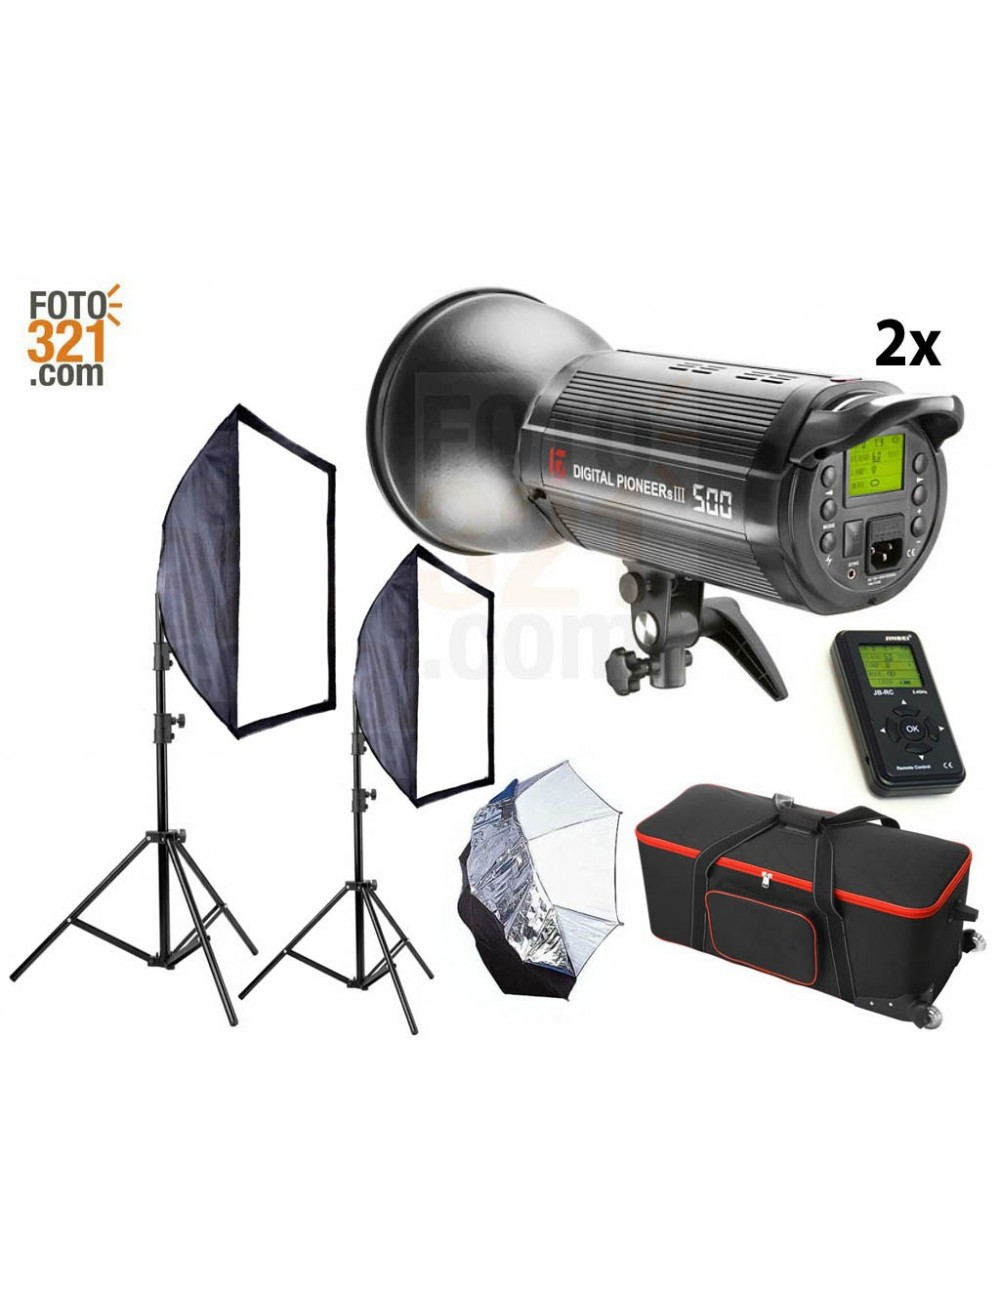 Kit 2A flash DPsIII 500 con maleta